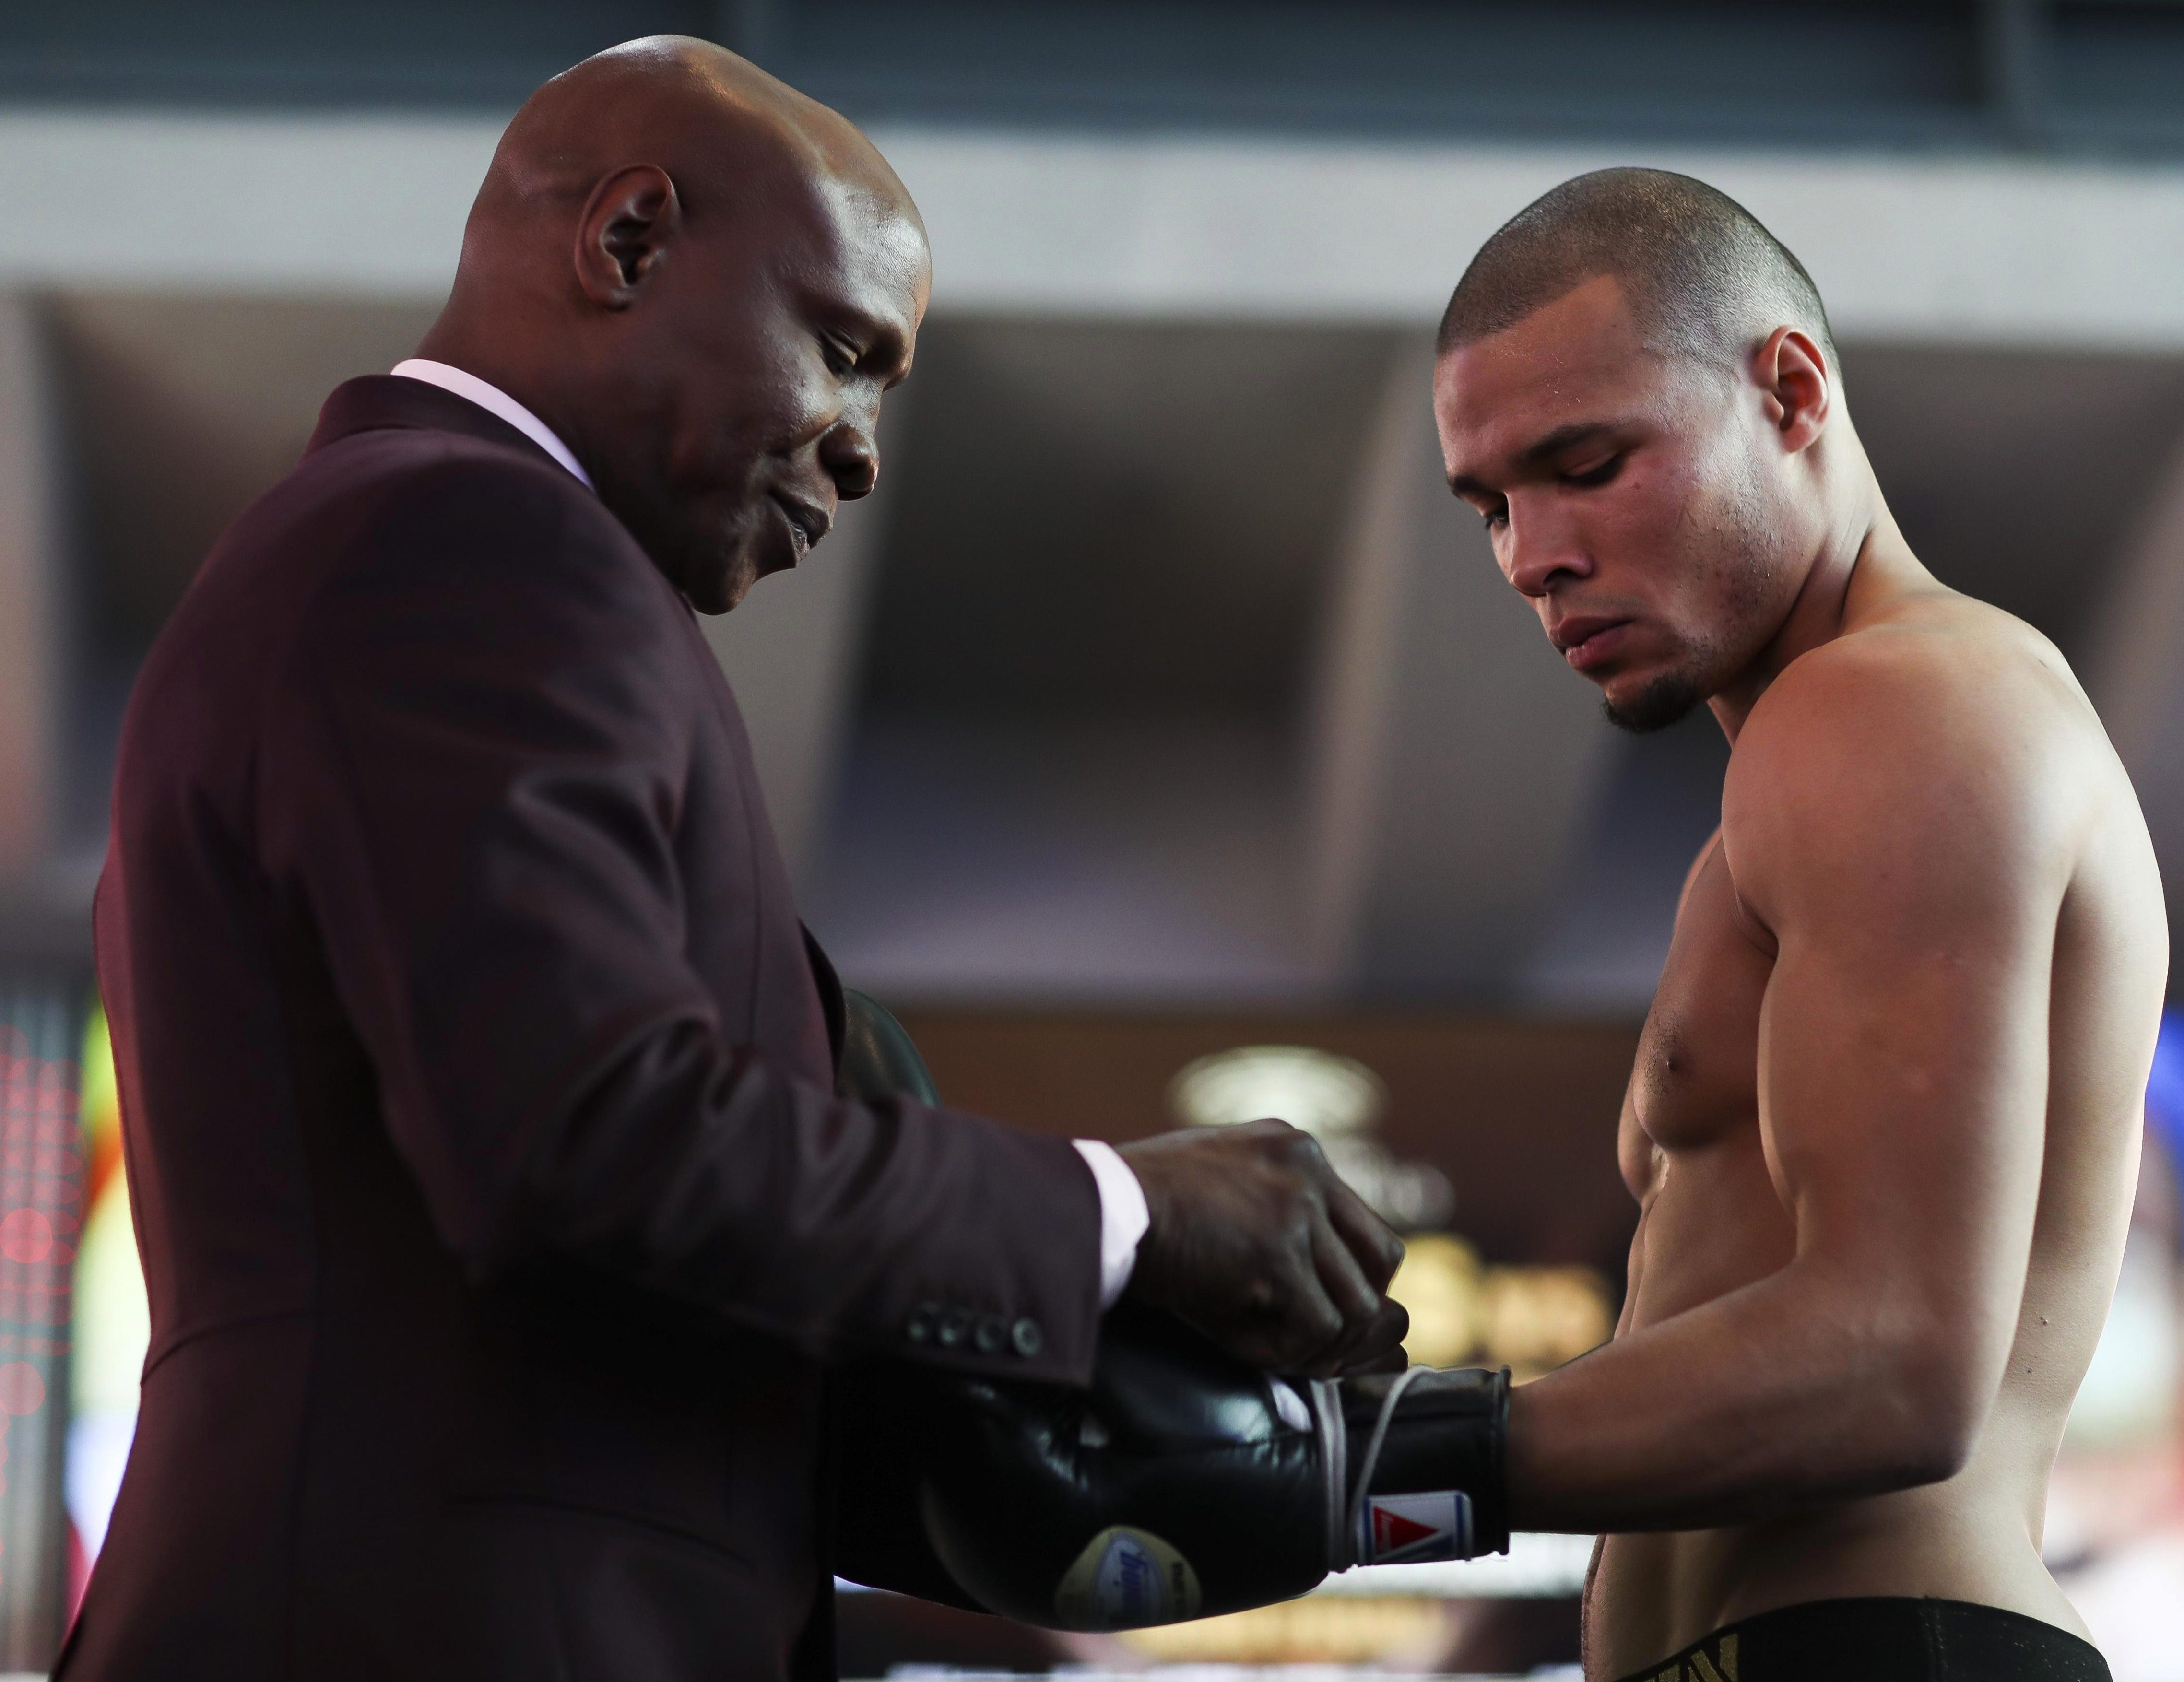 Former two-weight world champion Chris Eubank Snr has always had a big hand in the career of his son - who himself is now fighting for a title